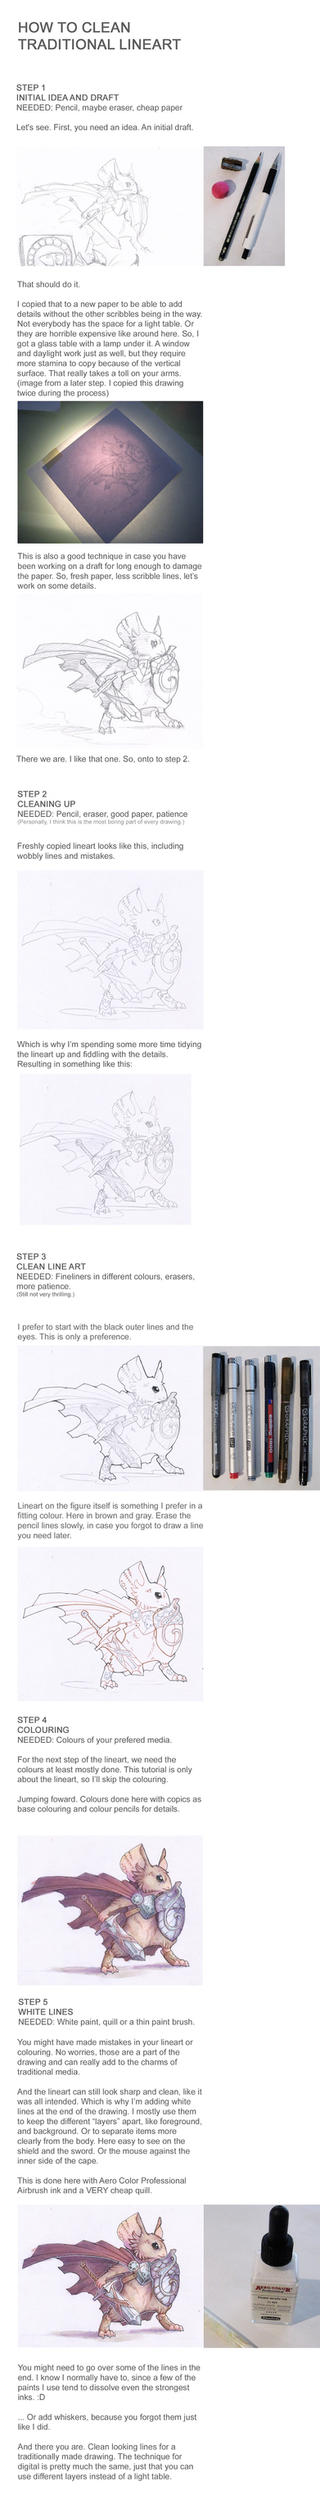 Traditional Media Lineart Tutorial by drachenmagier